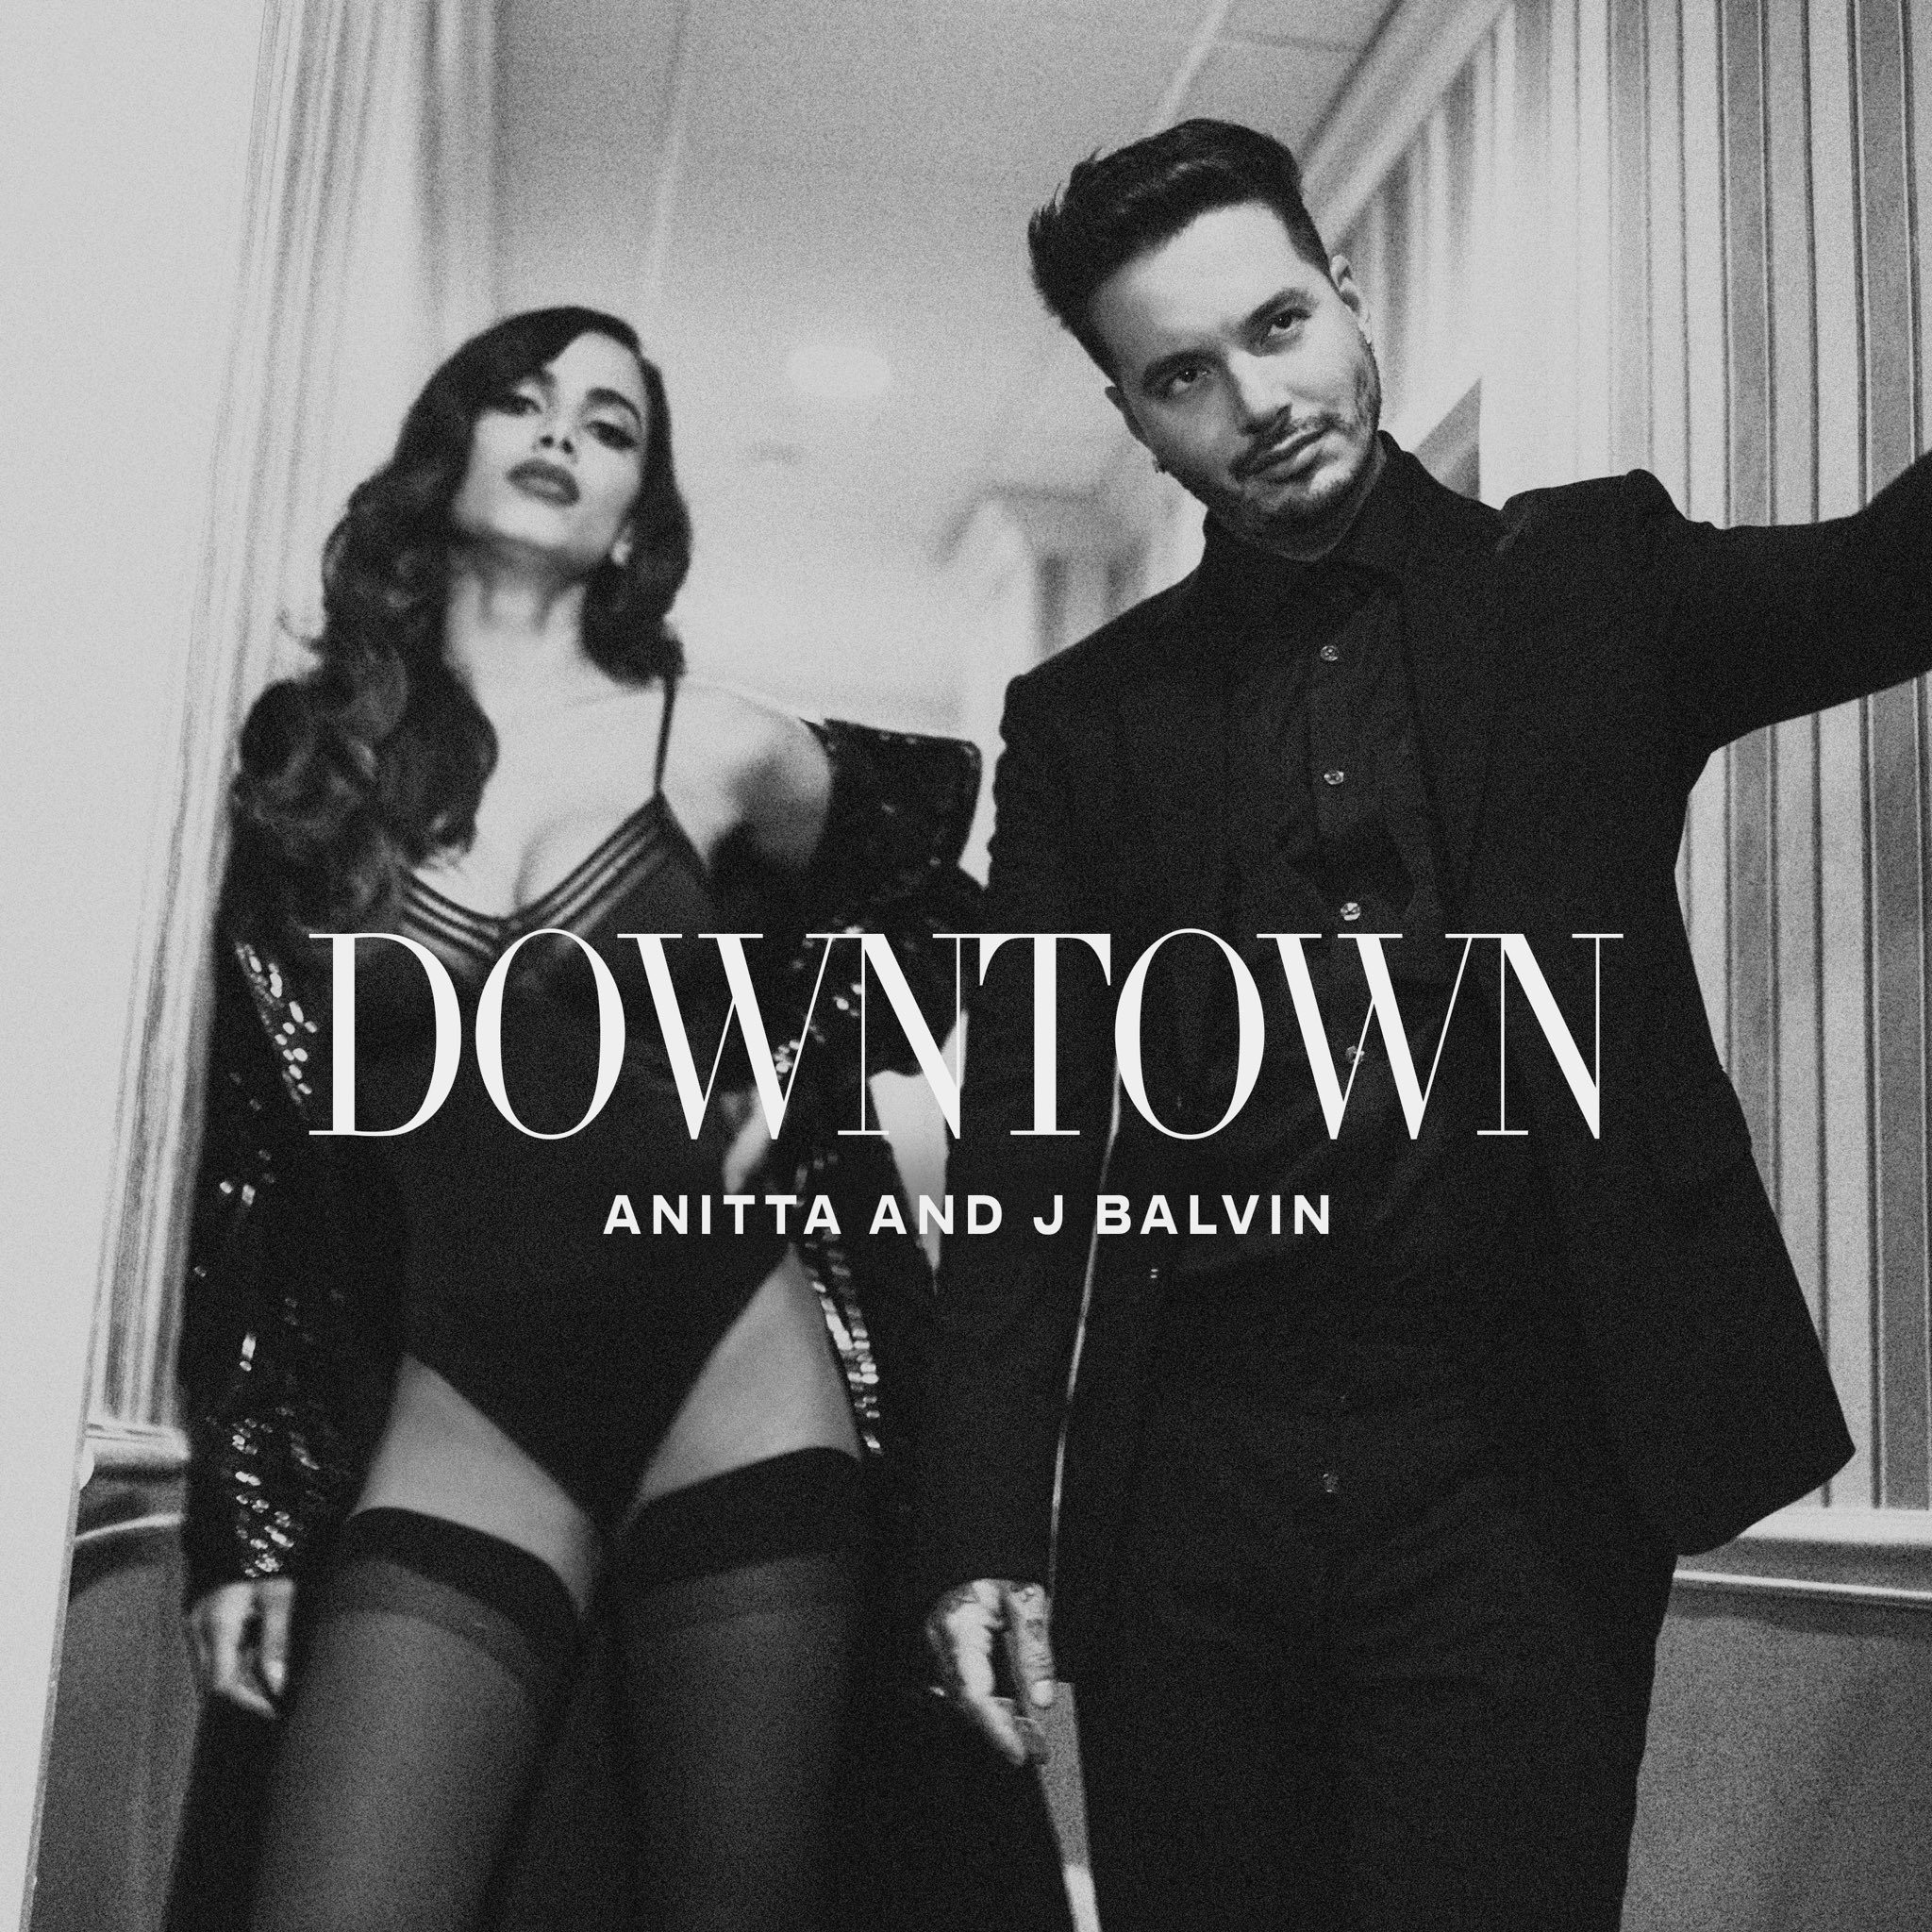 """""""Downtown"""" by @Anitta & @JBALVIN is available on all streaming platforms! Listen here ▶️ https://t.co/oyb7xq2MTa https://t.co/LKd8Vzm21T"""